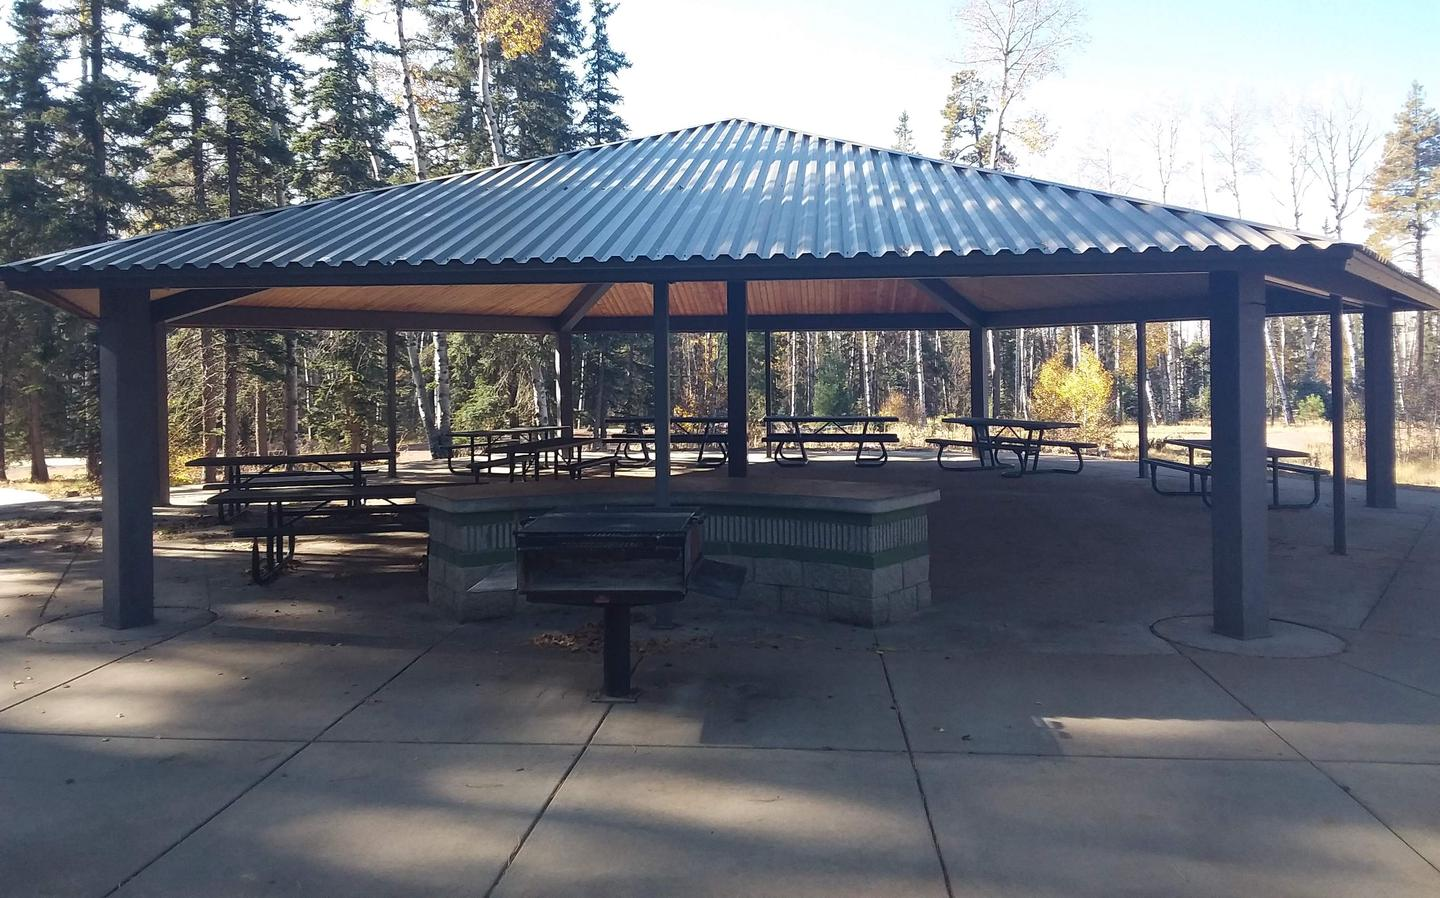 Apache Trout Campground group site ramada